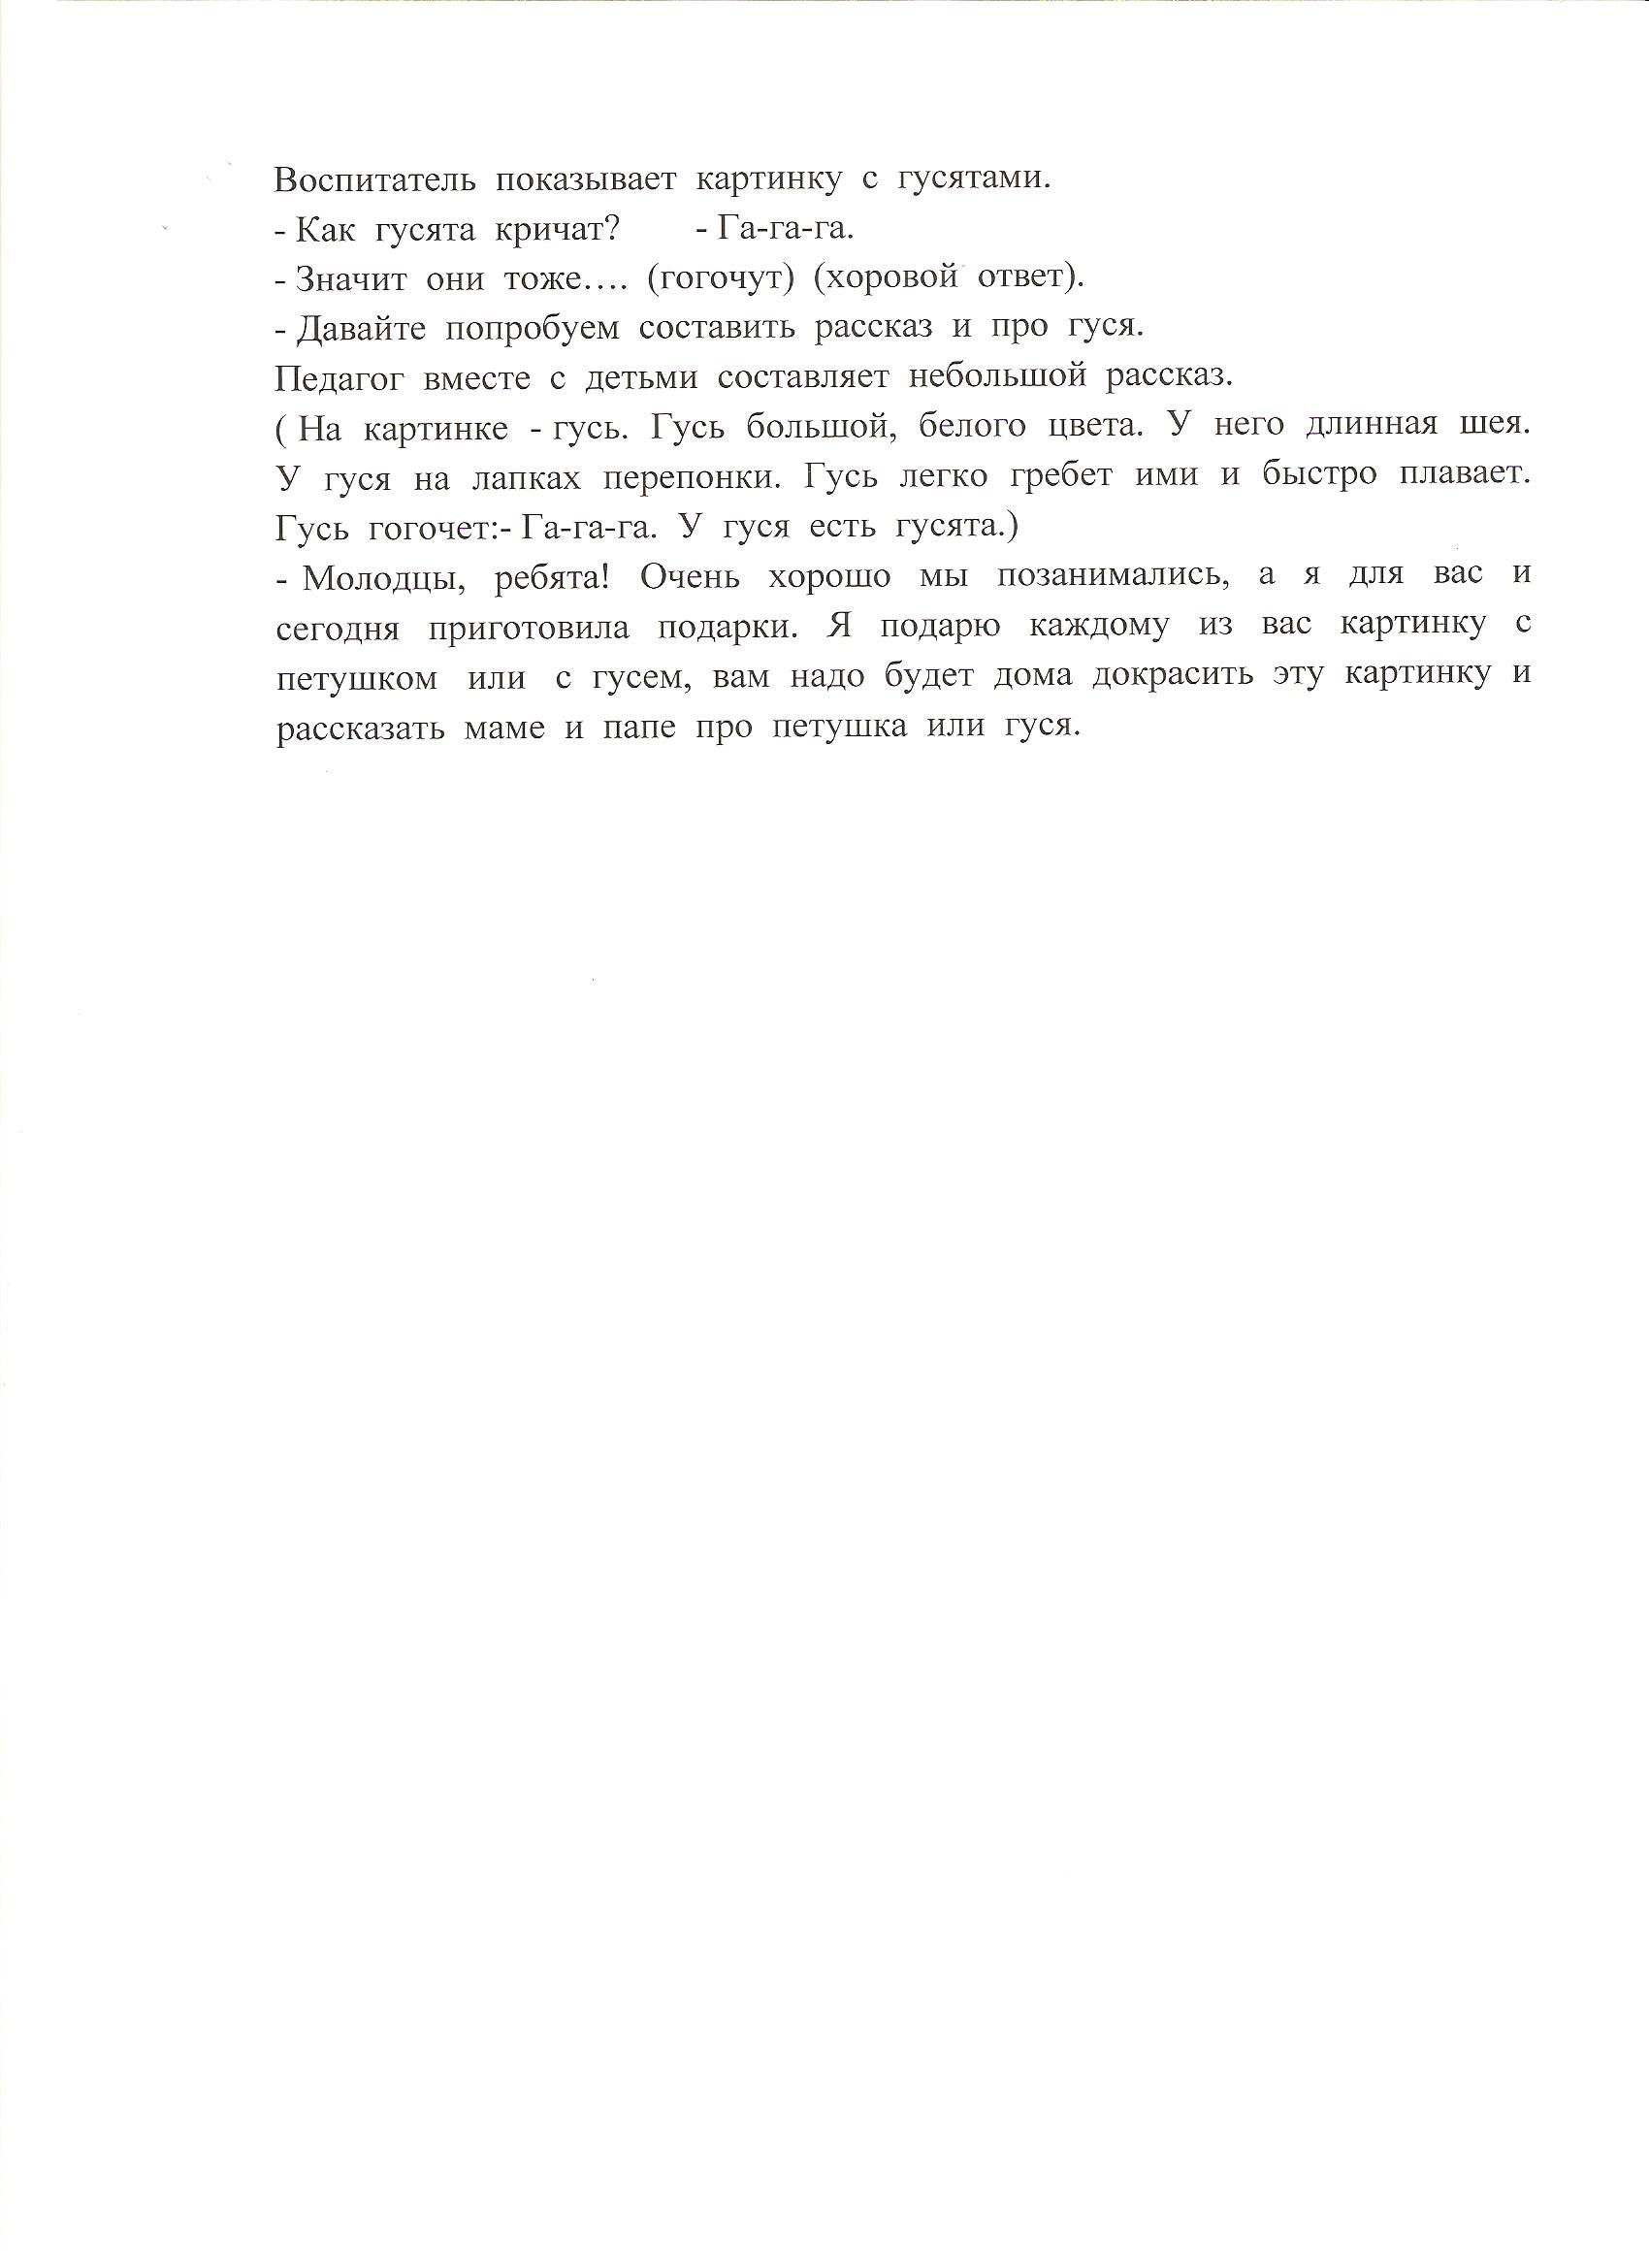 C:\Users\Оля\Pictures\2015-03-31 12\12 001.jpg